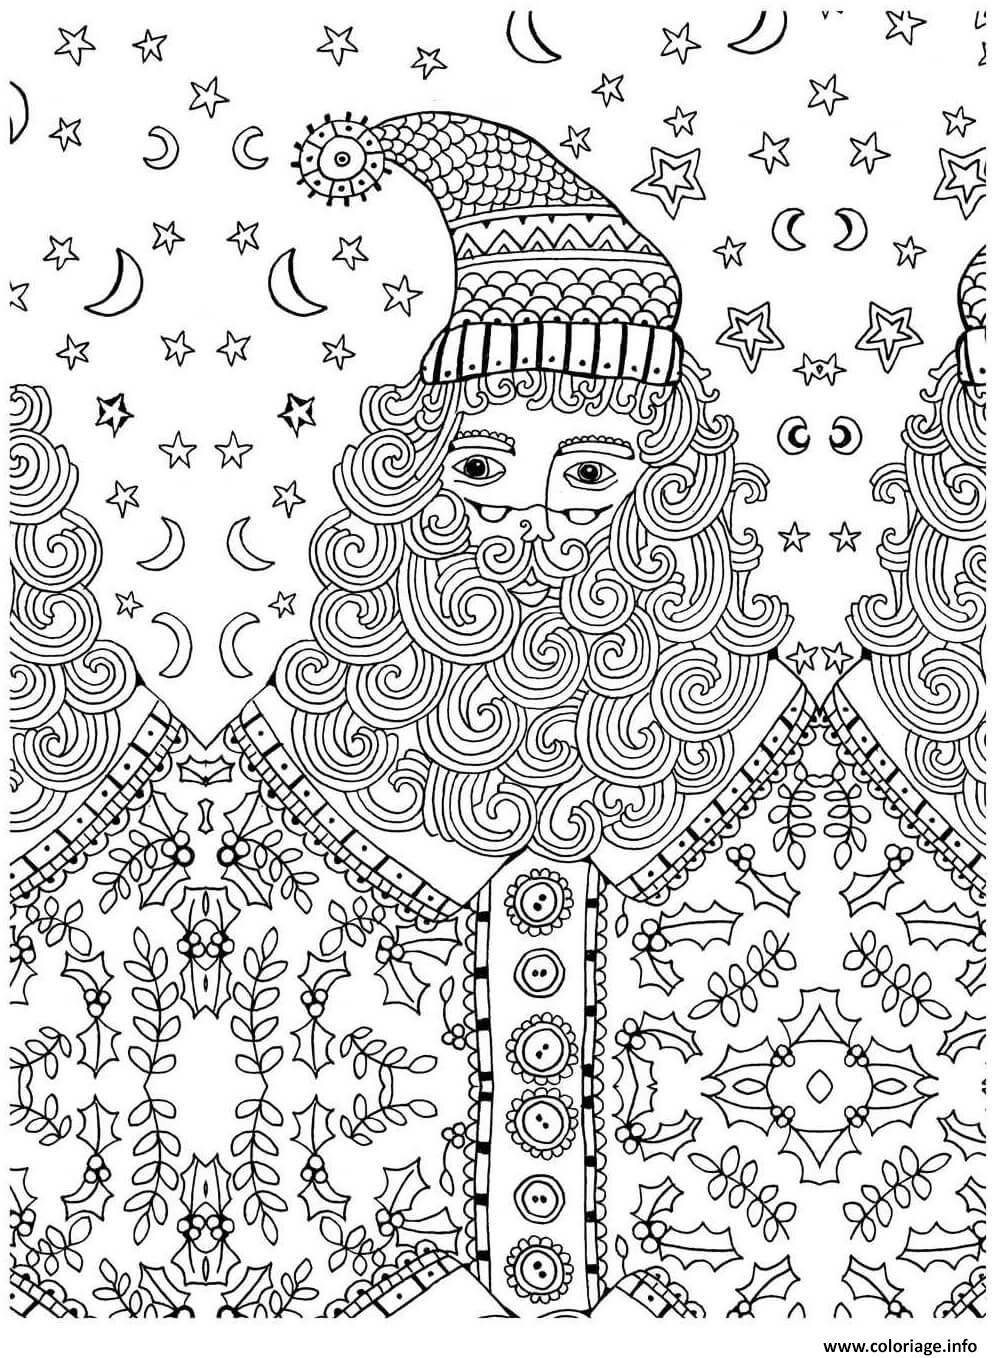 coloriage anti stress noel